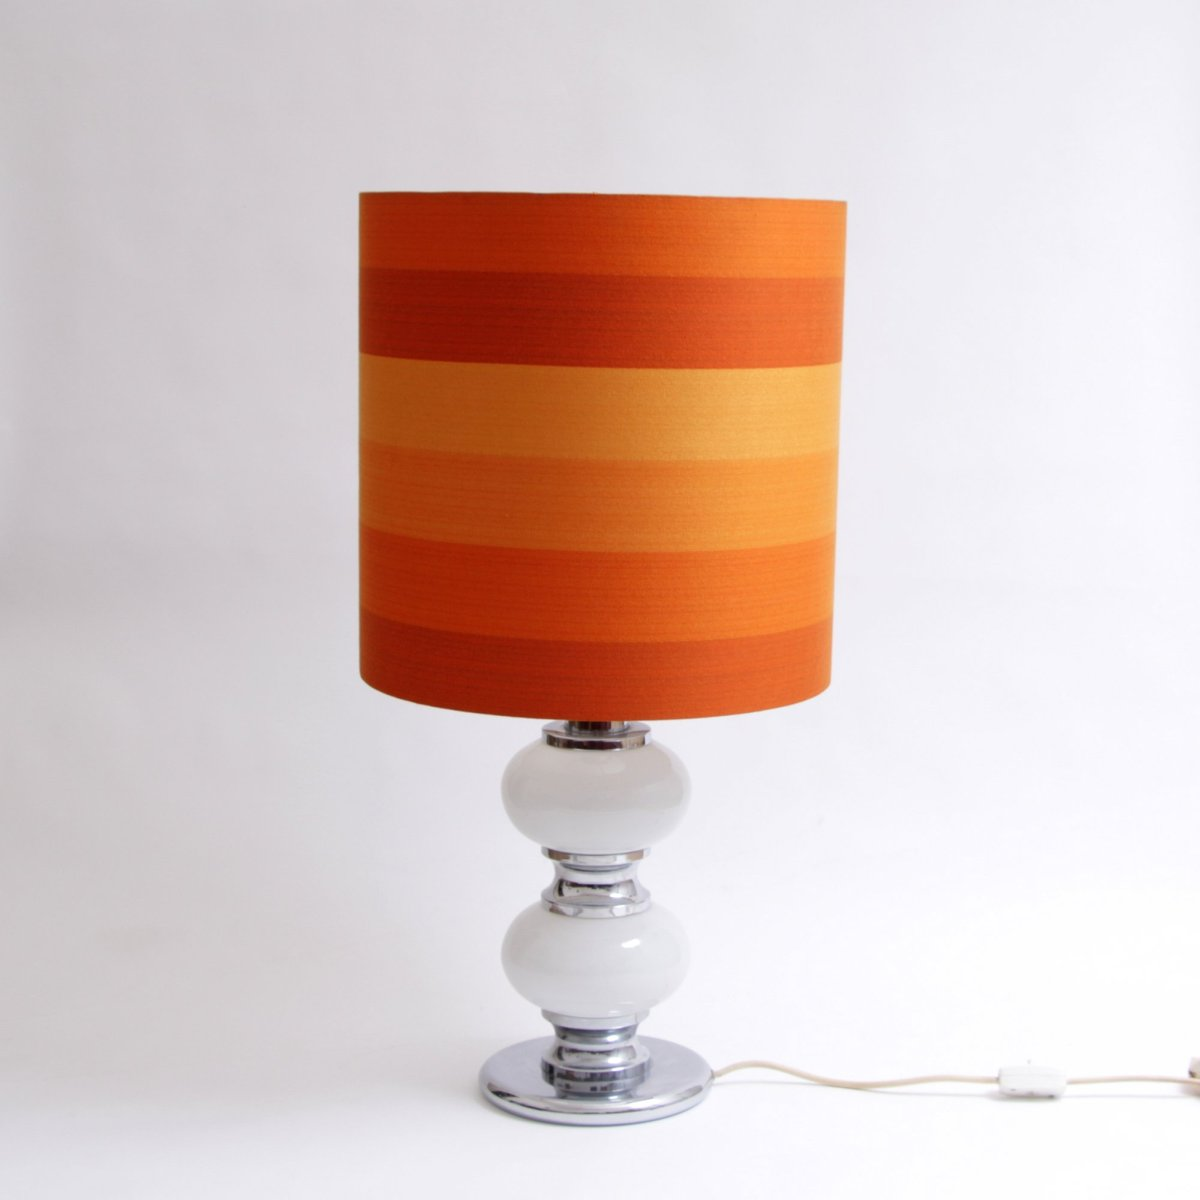 orange vintage floor lamp with illuminated base for sale at pamono - orange vintage floor lamp with illuminated base